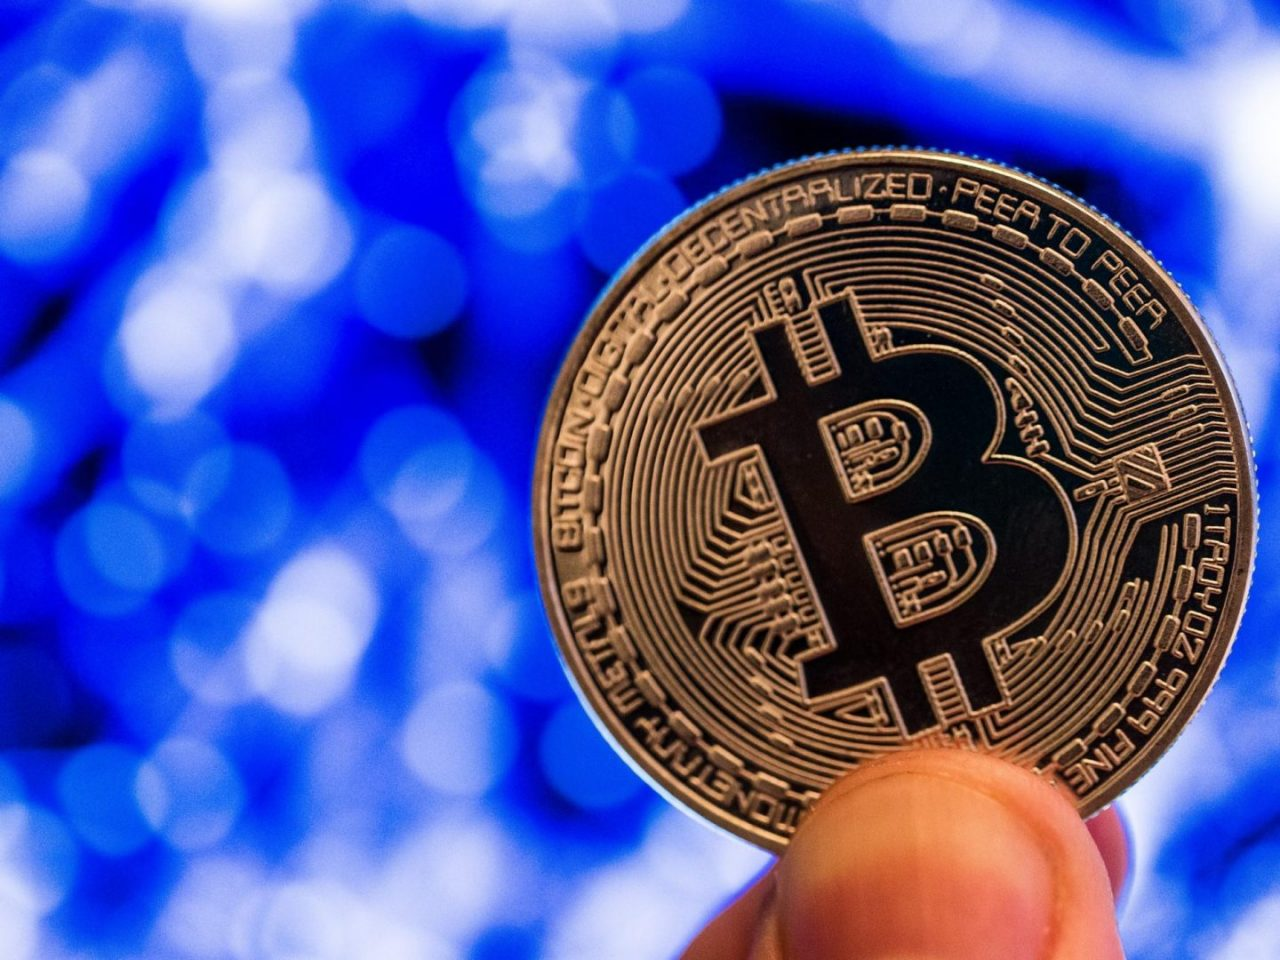 Back To The Bull Market: Bitcoin Soars To $7,000 Over The Weekend